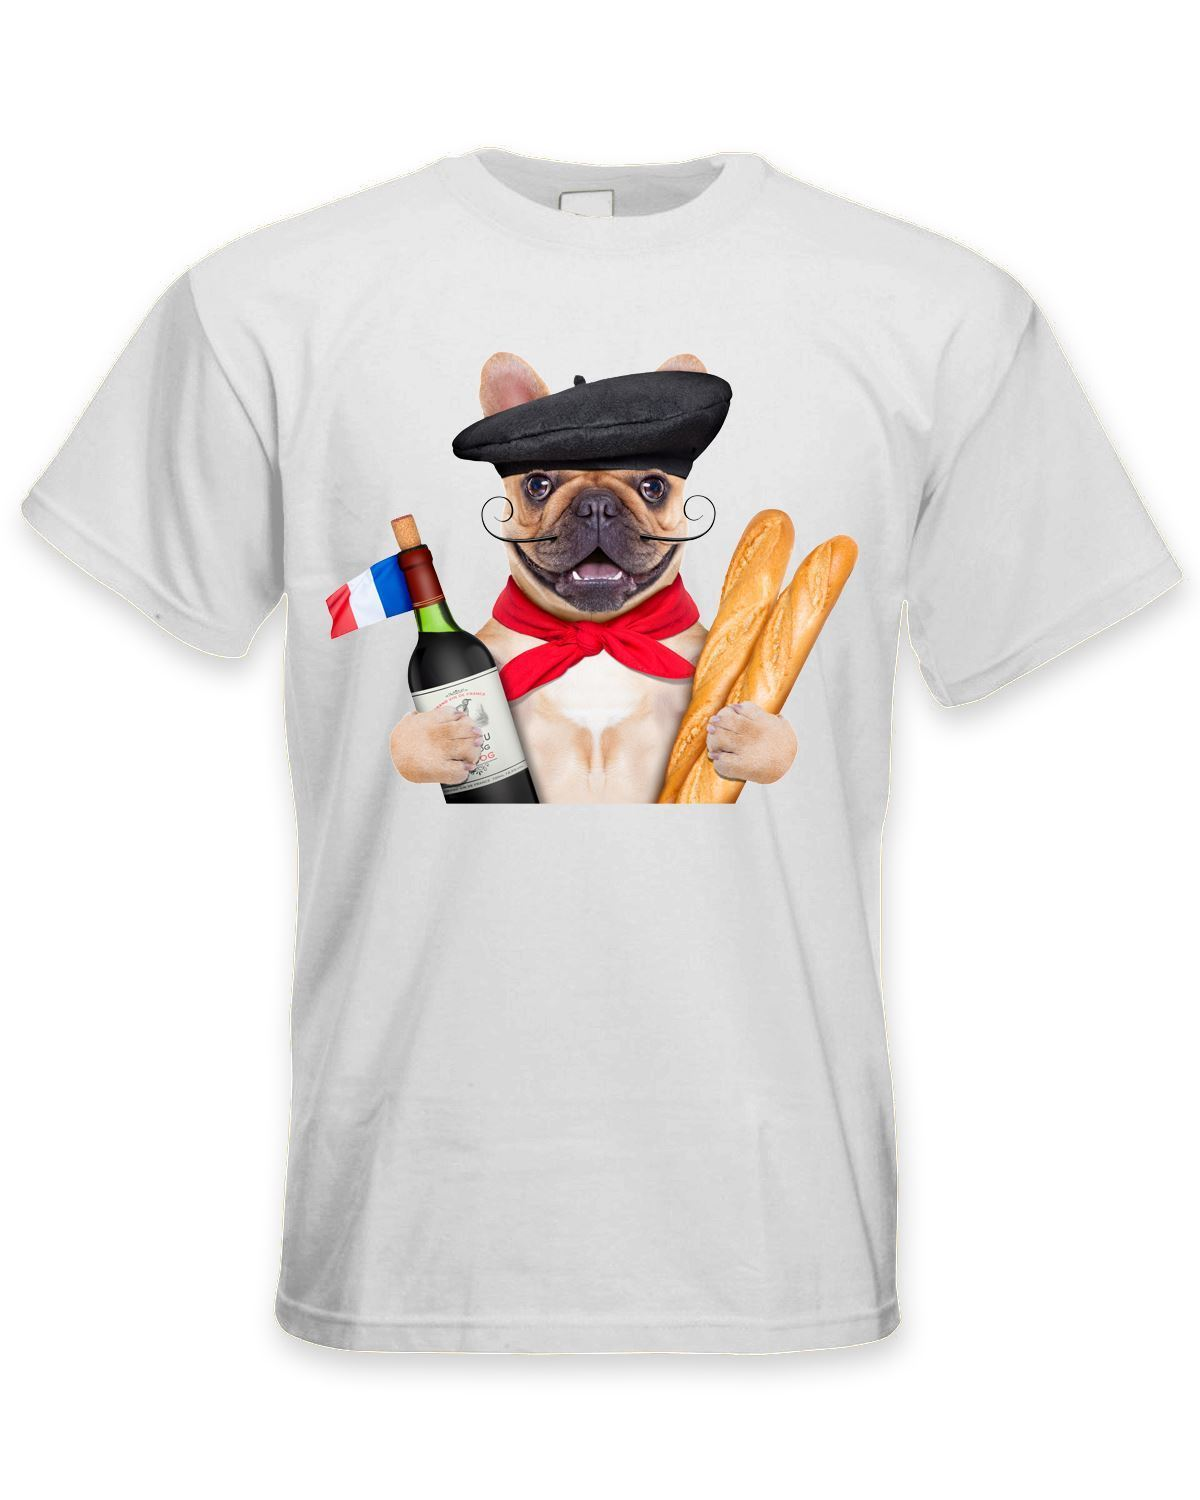 French Bulldog With Wine and Baguette Mens T-Shirt - Funny Pet Bull Dog MenS High Quality Custom Printed Tops Hipster Tees